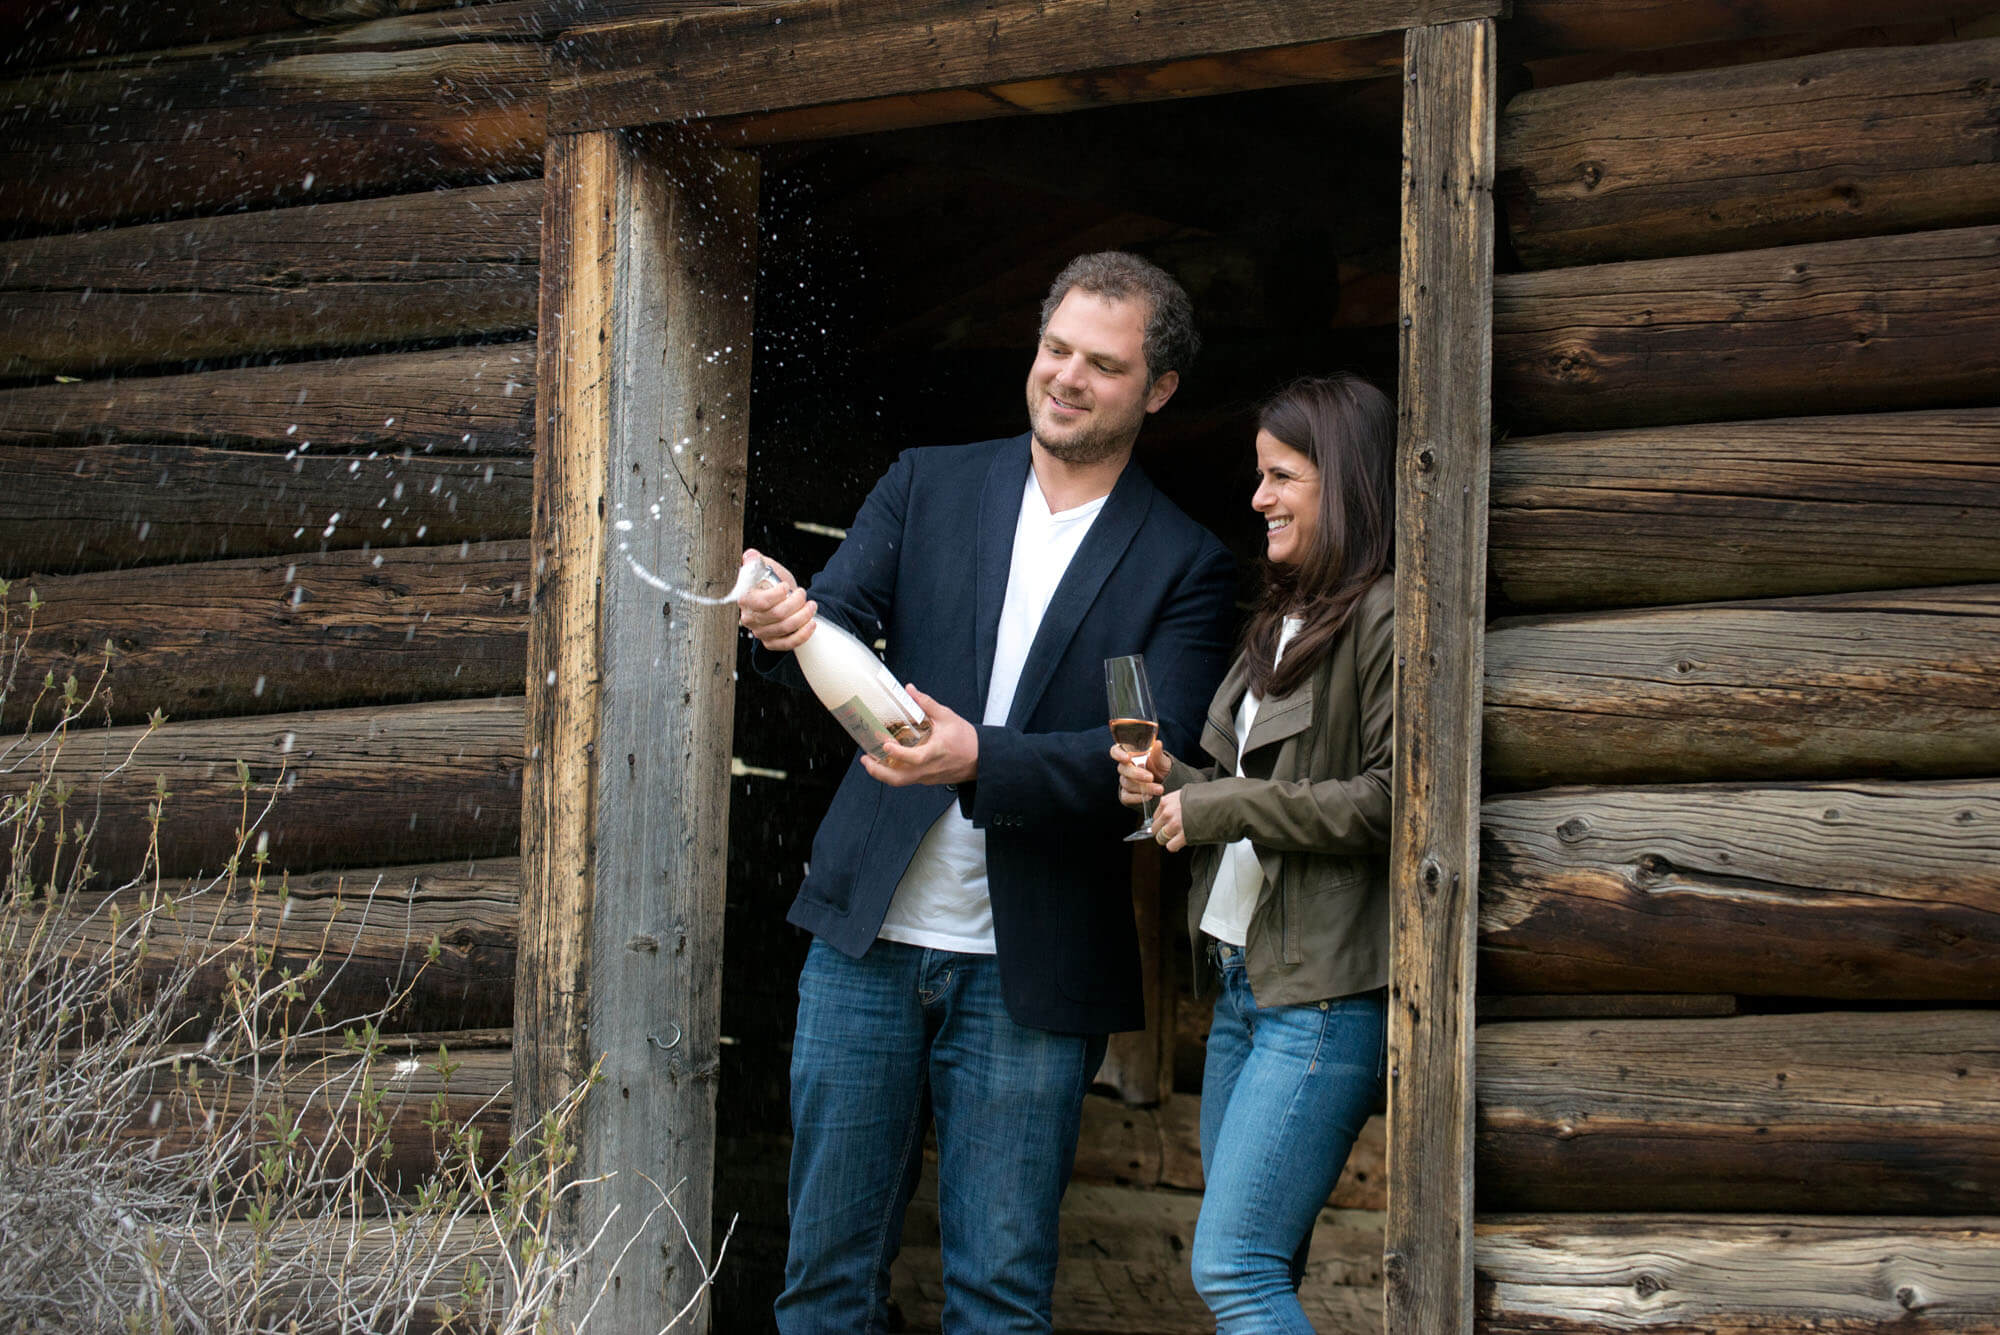 photo of a couple in the door of a rustic cabin popping champagne taken by Aspen photographer Michele Cardamone